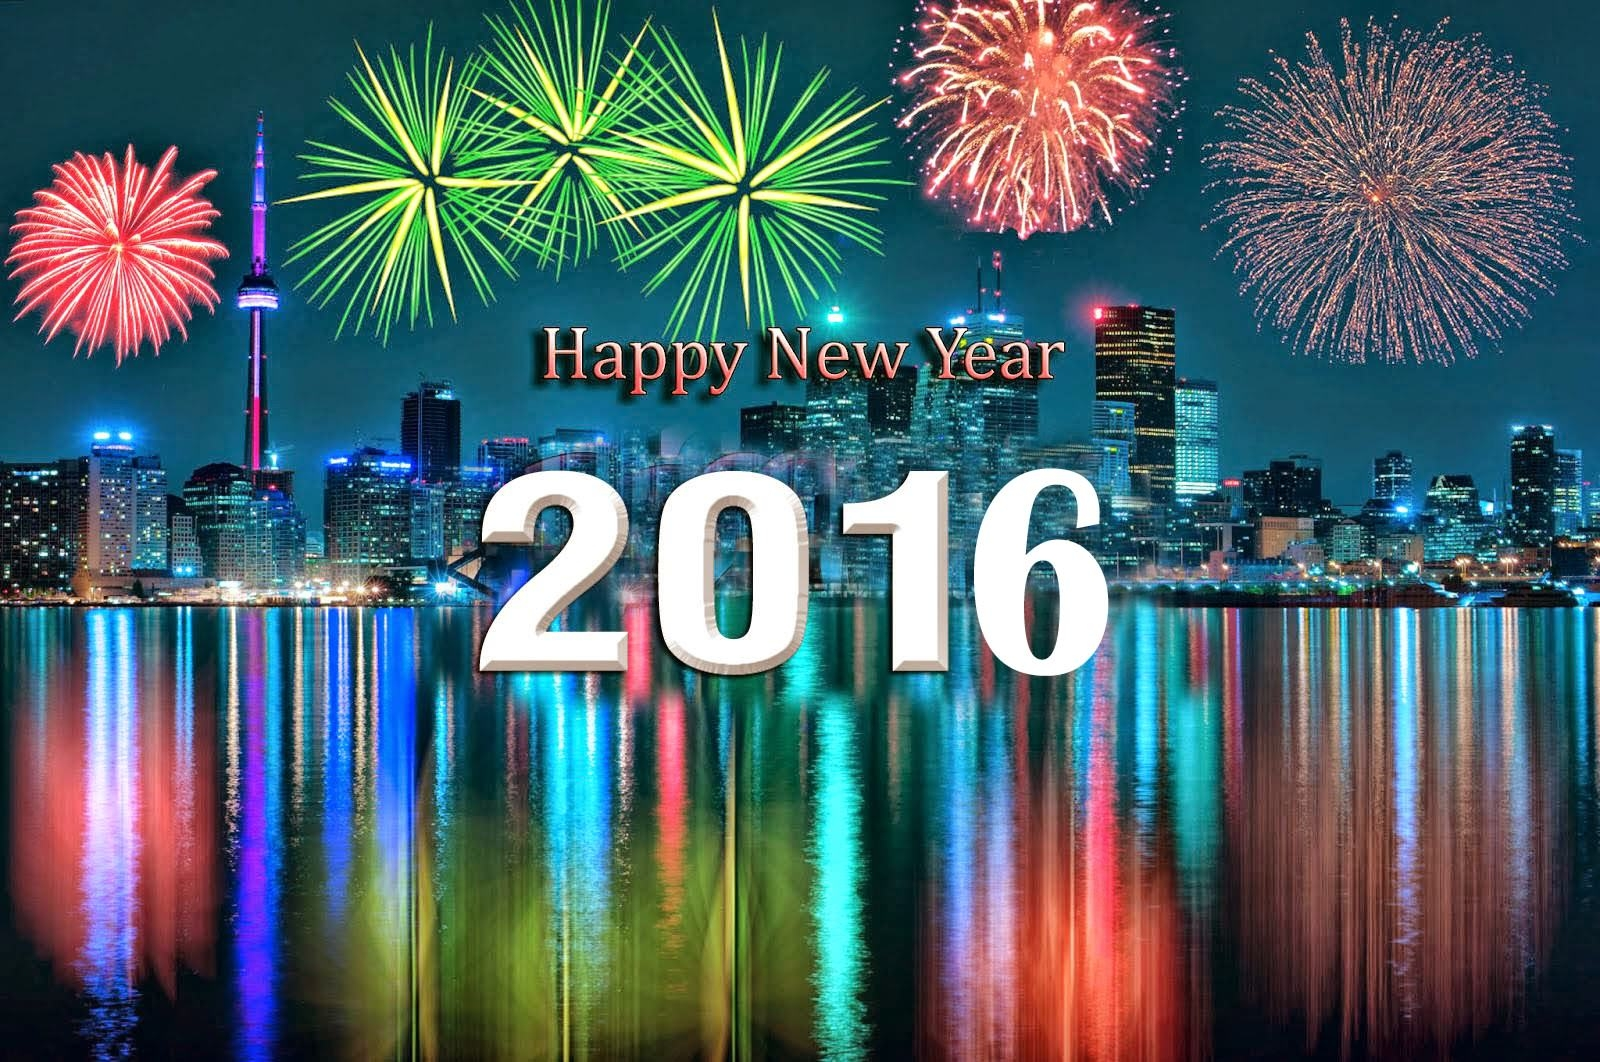 New-year-2016-wallpapers-in-HD-2